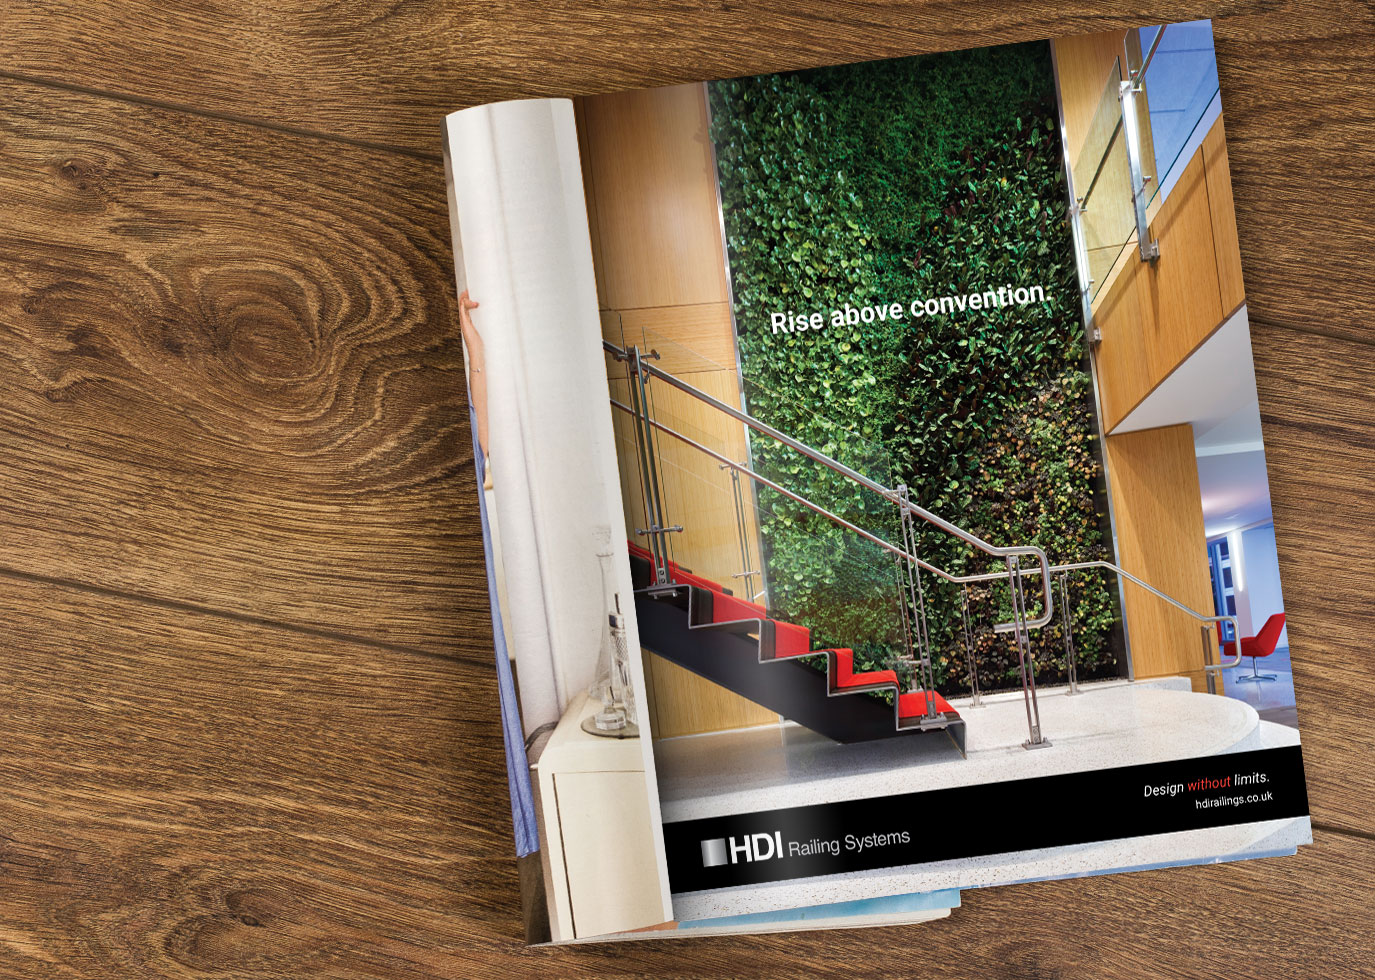 Synapse Website Strategy Case Study for HDI Railing Systems